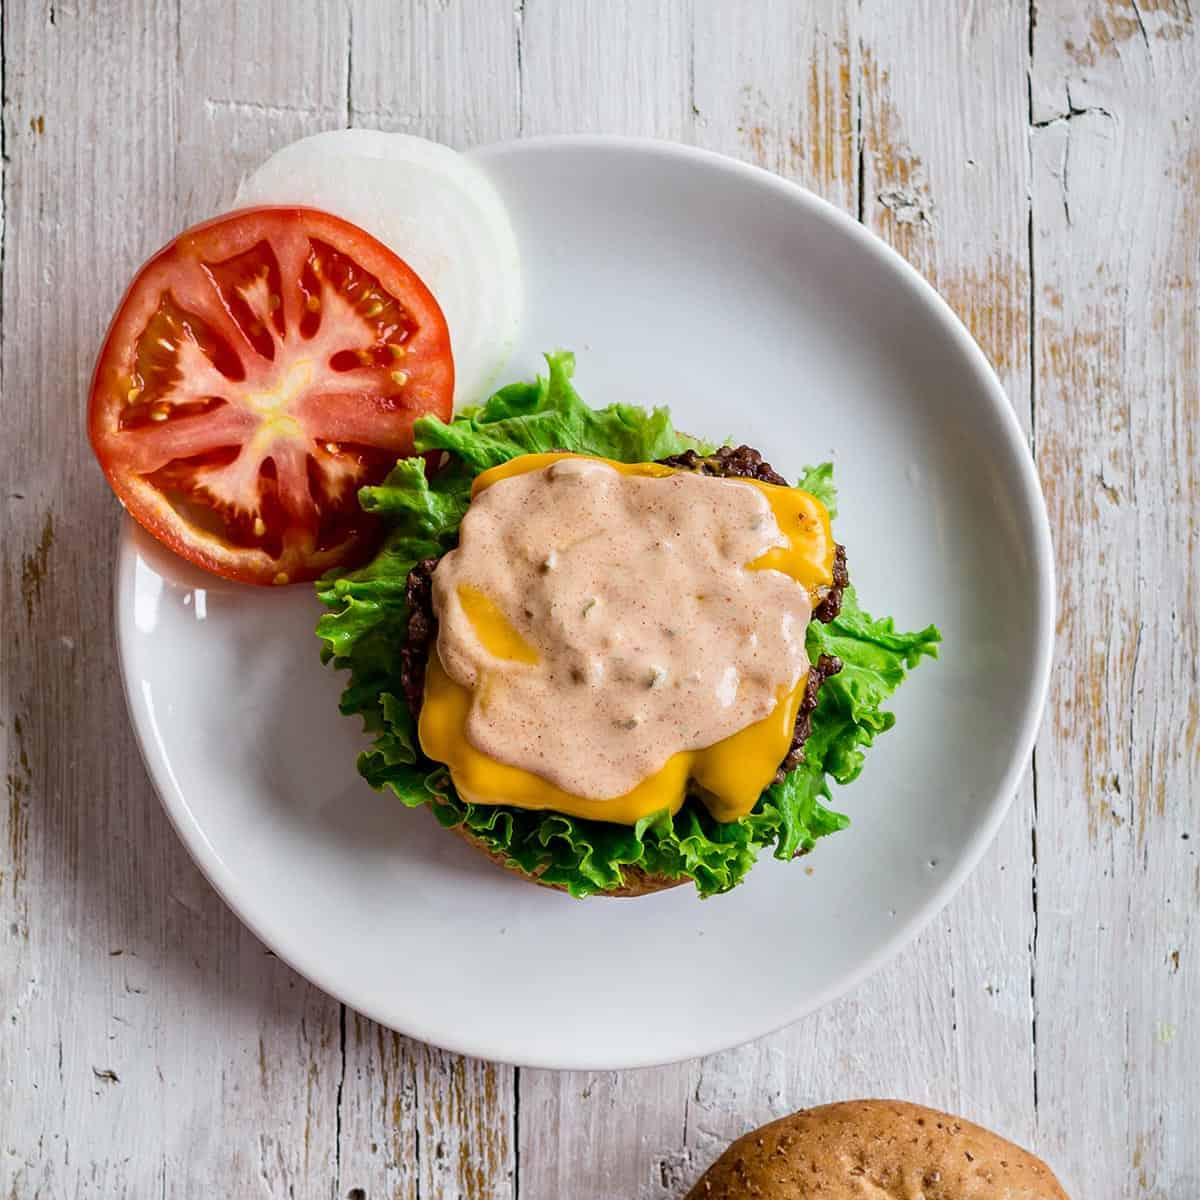 Burger sauce on top of a burger on a plate